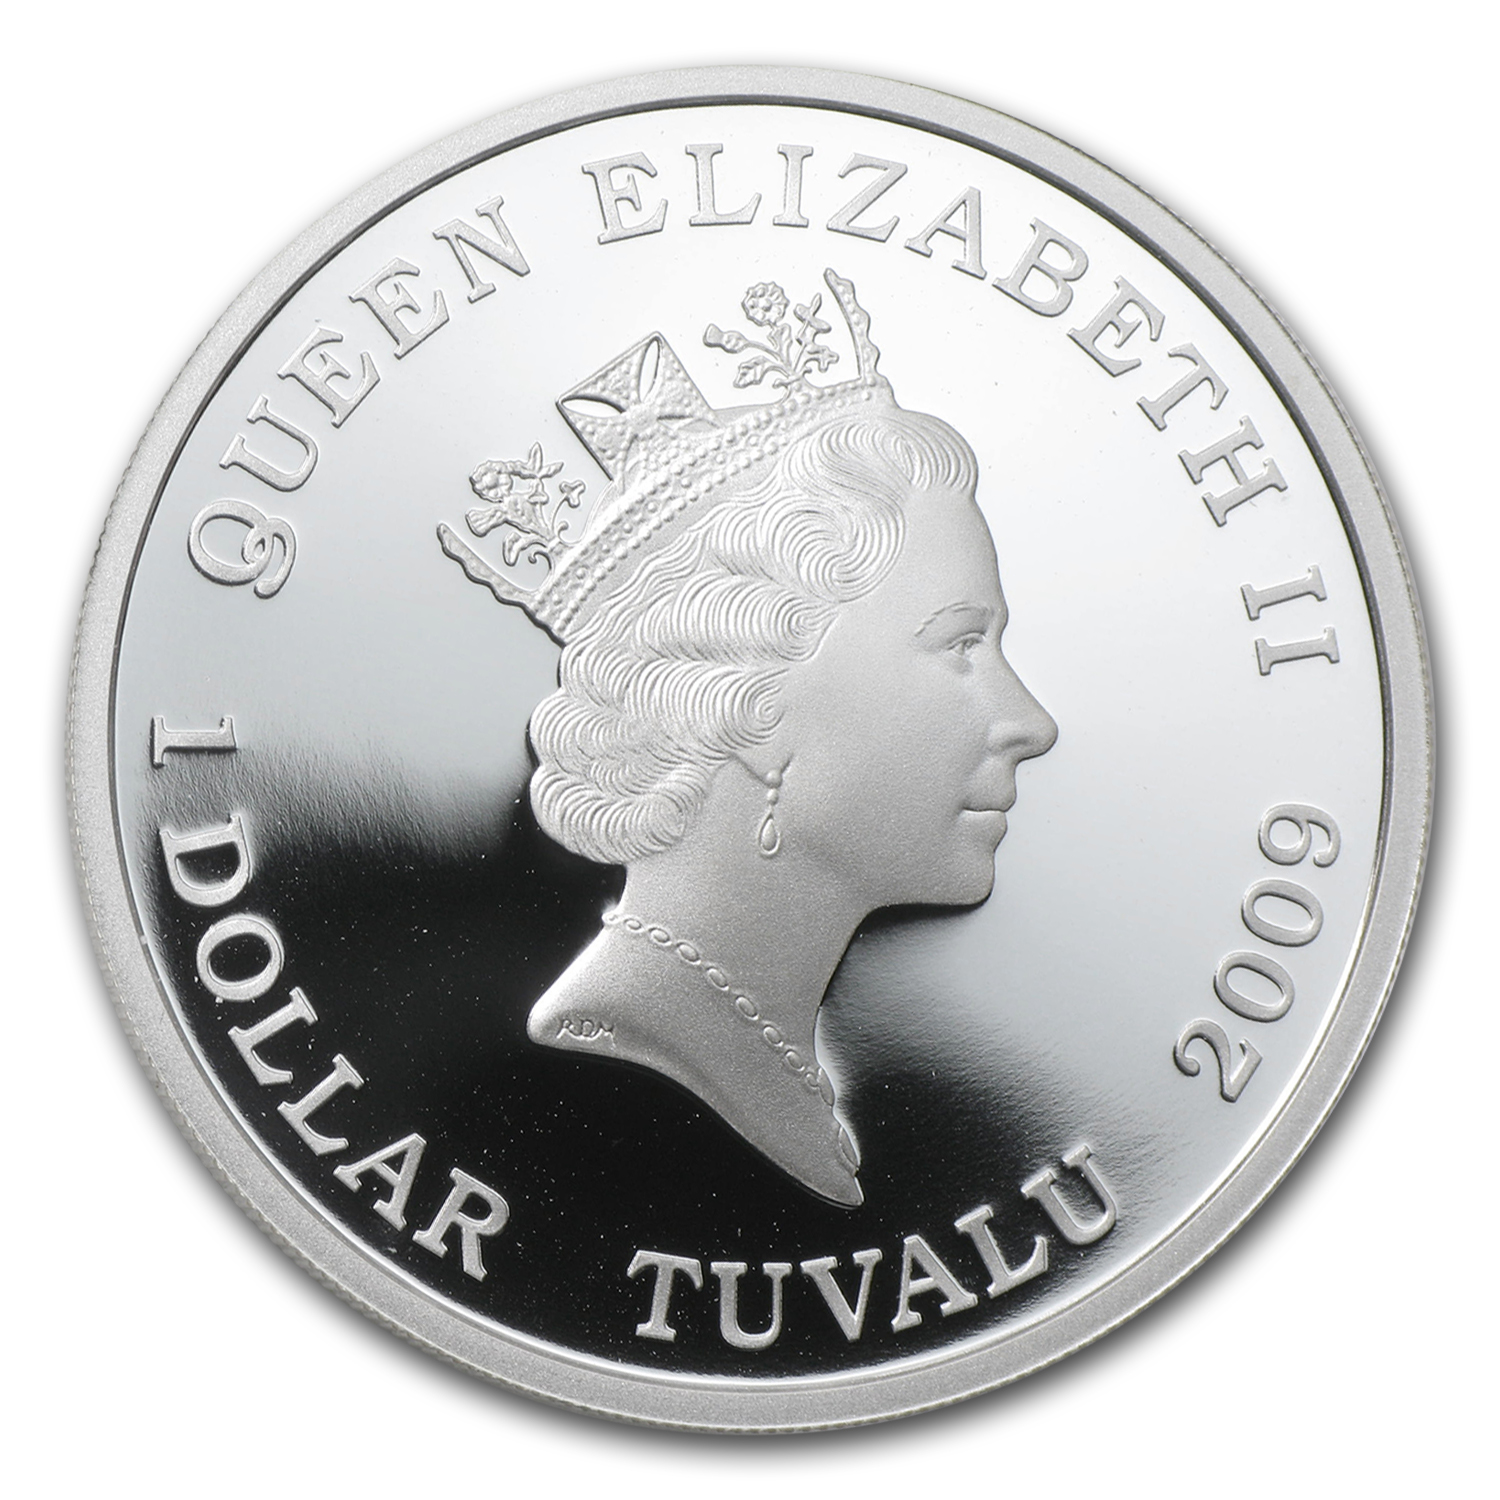 2009 1 oz Silver Tuvalu Barbie 50th Anniversary Proof